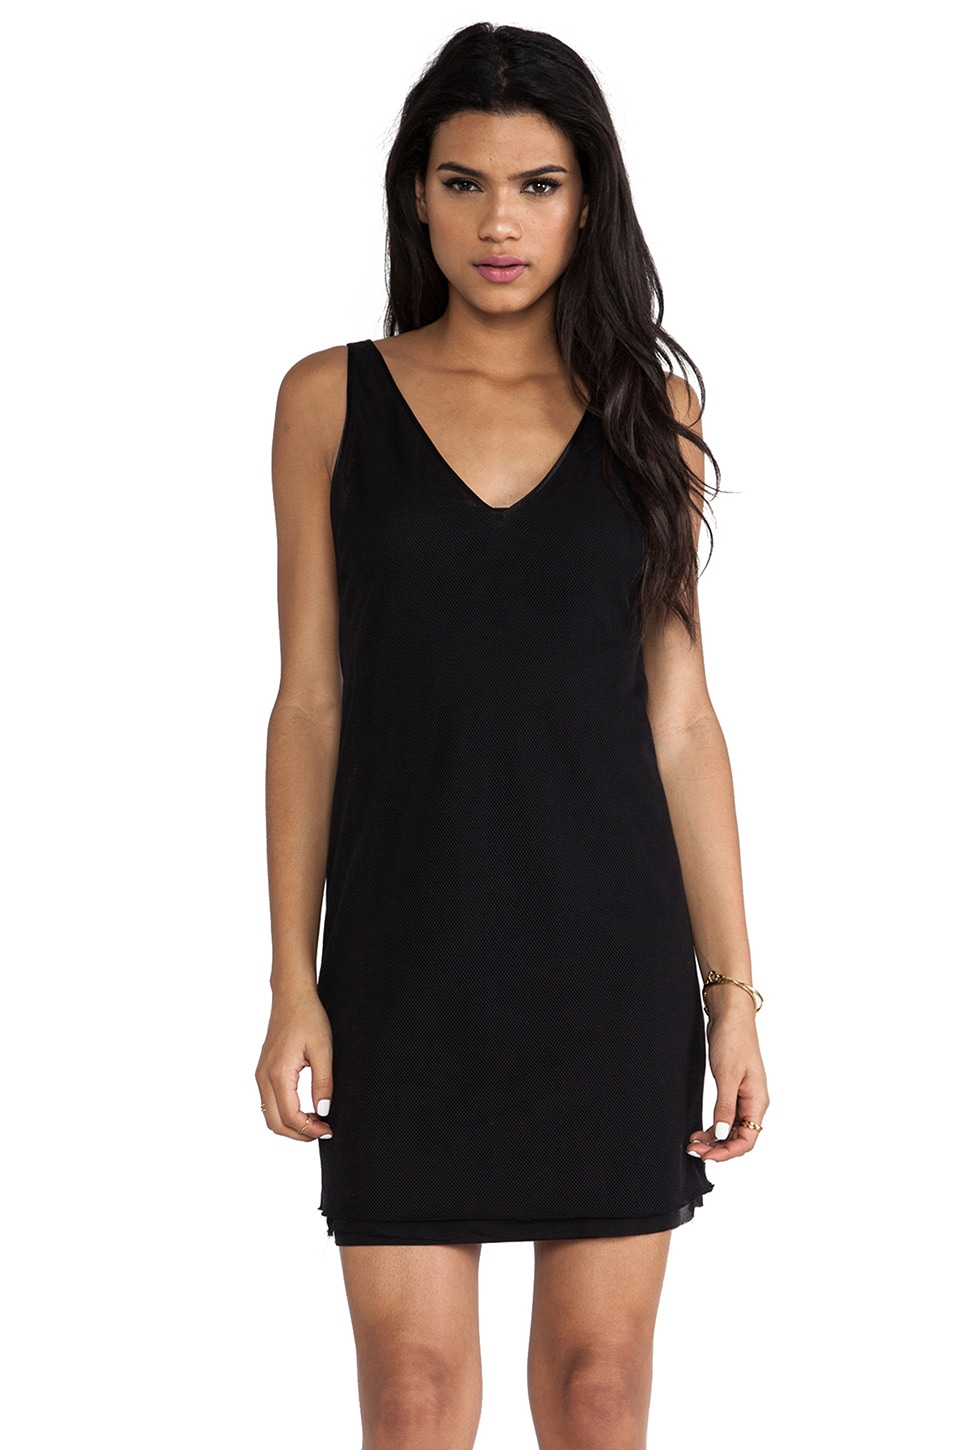 BLK DNM Dress 28 in Black